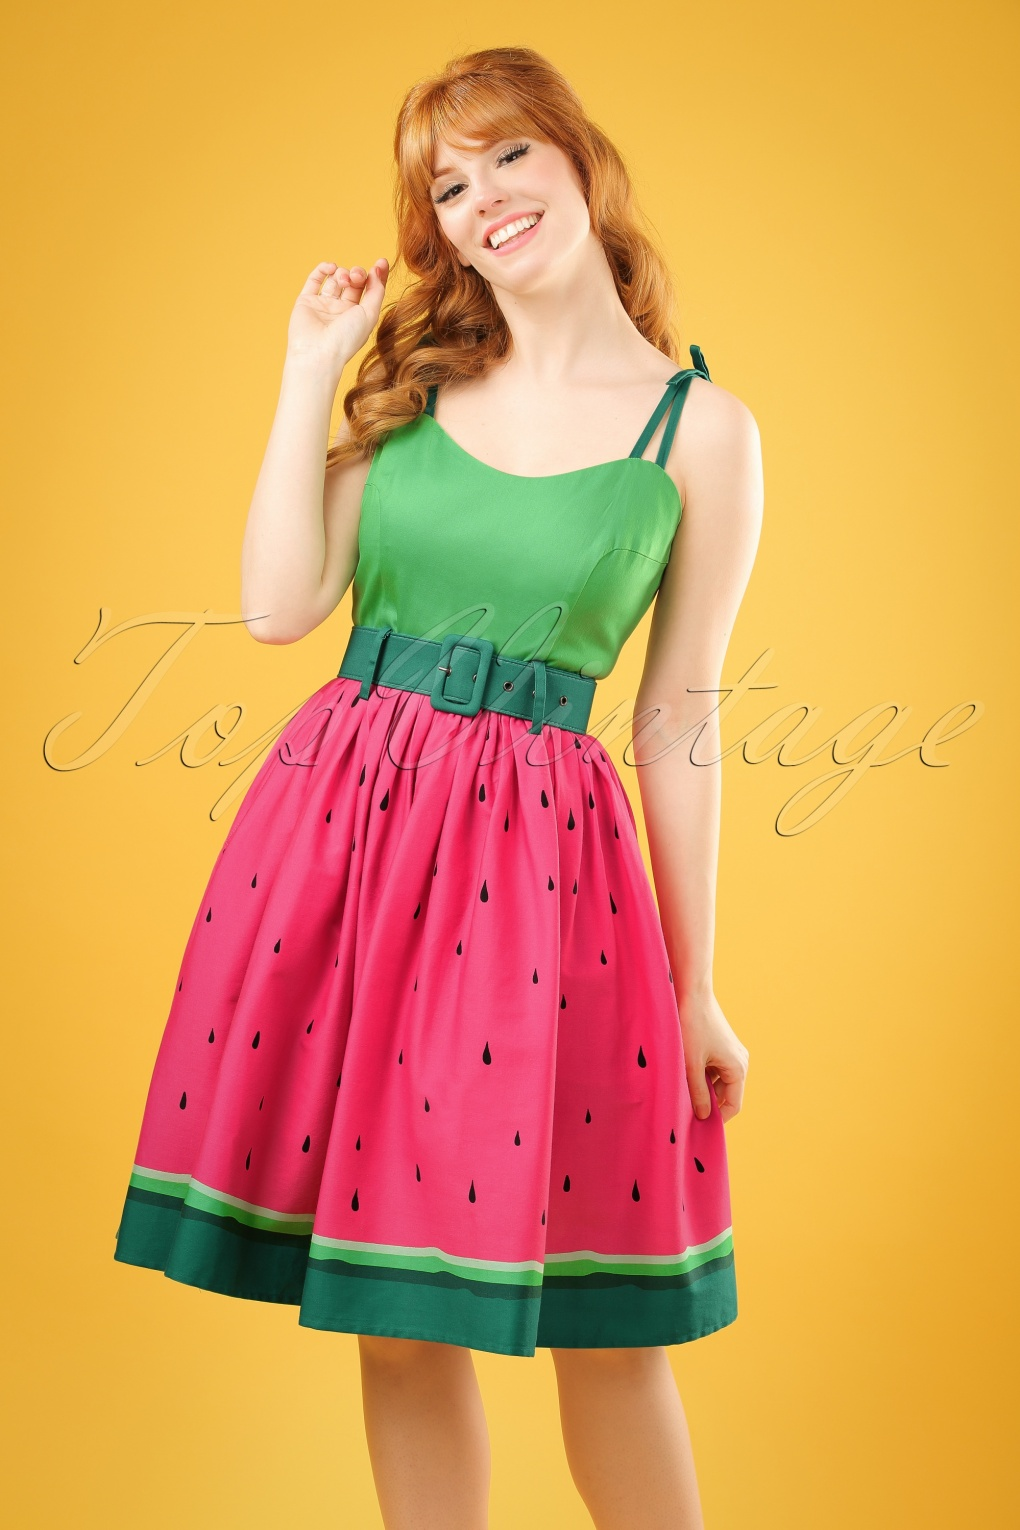 Swing Dresses | Vintage Inspired Dresses 50s Jade Watermelon Swing Dress in Pink and Green £72.98 AT vintagedancer.com